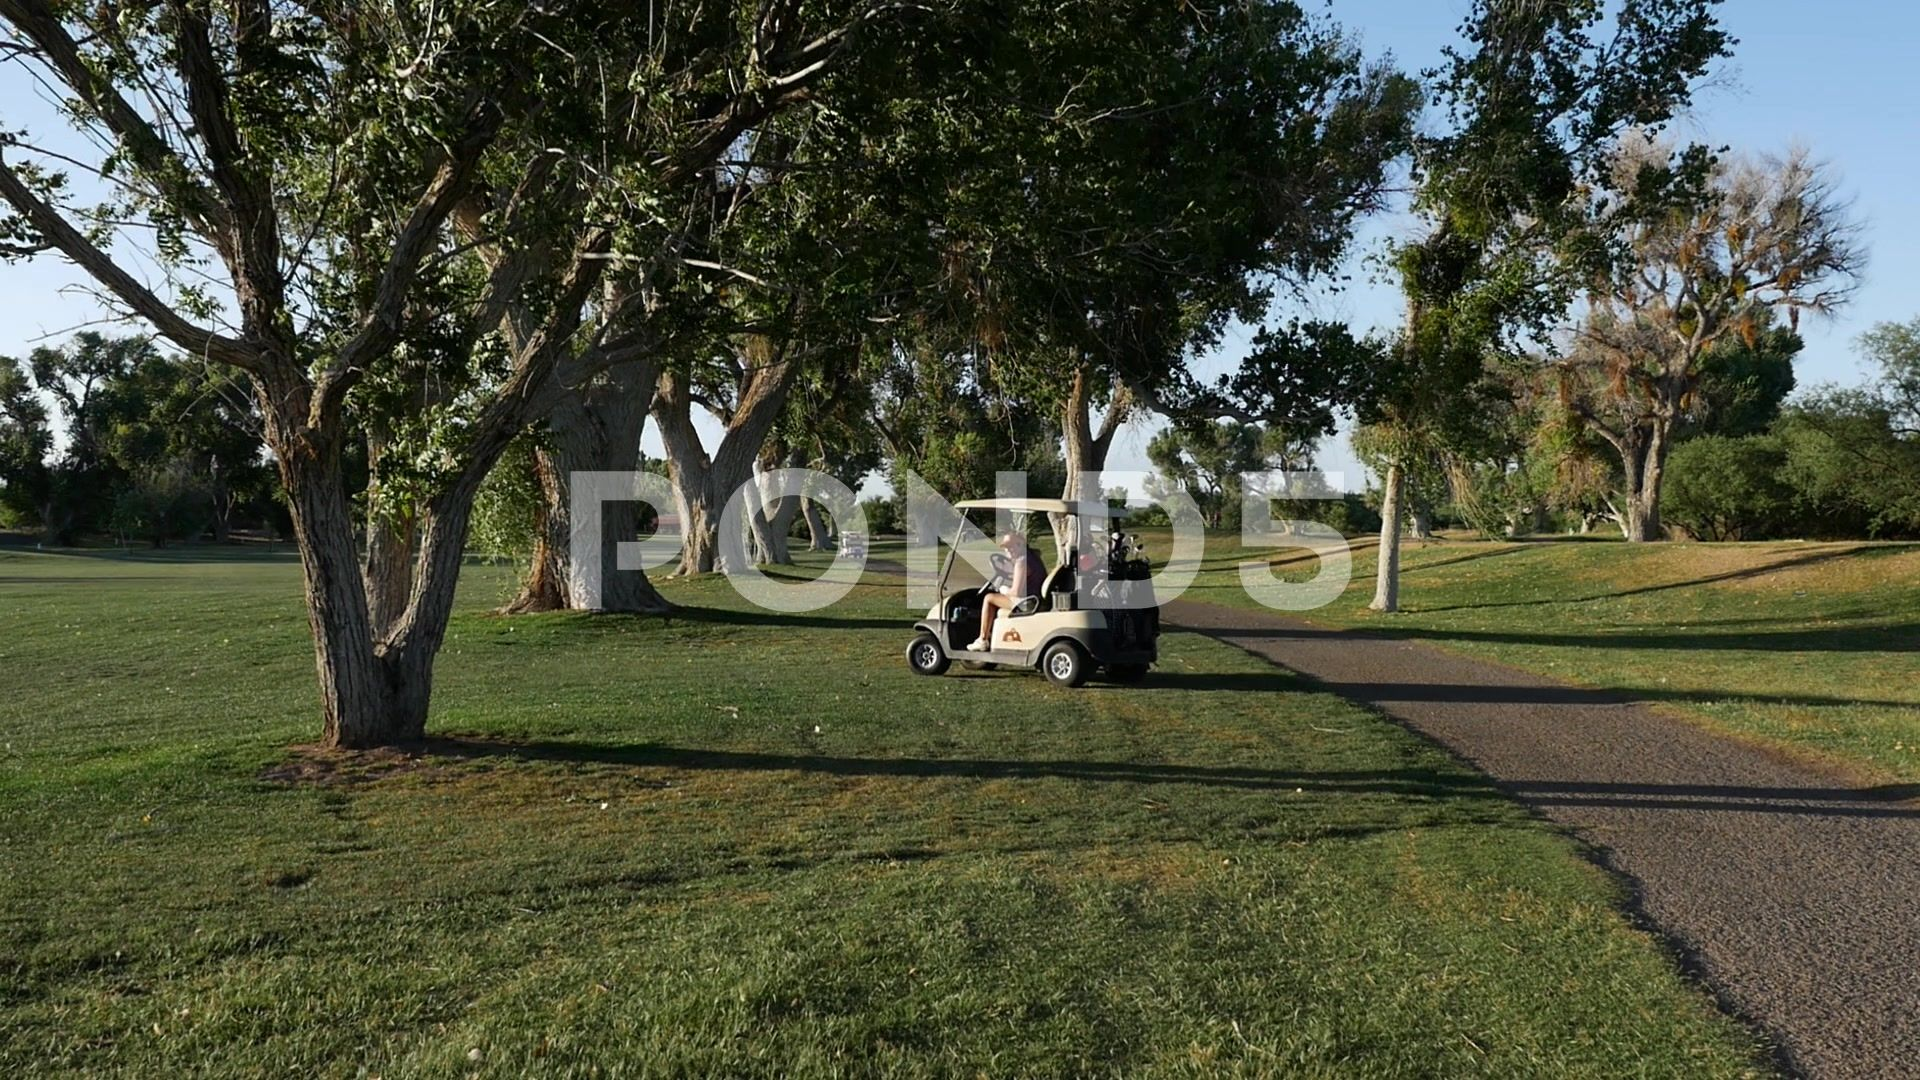 People enjoying a day out on the golf course in carts Stock Footage dayenjoyingPeoplegolf